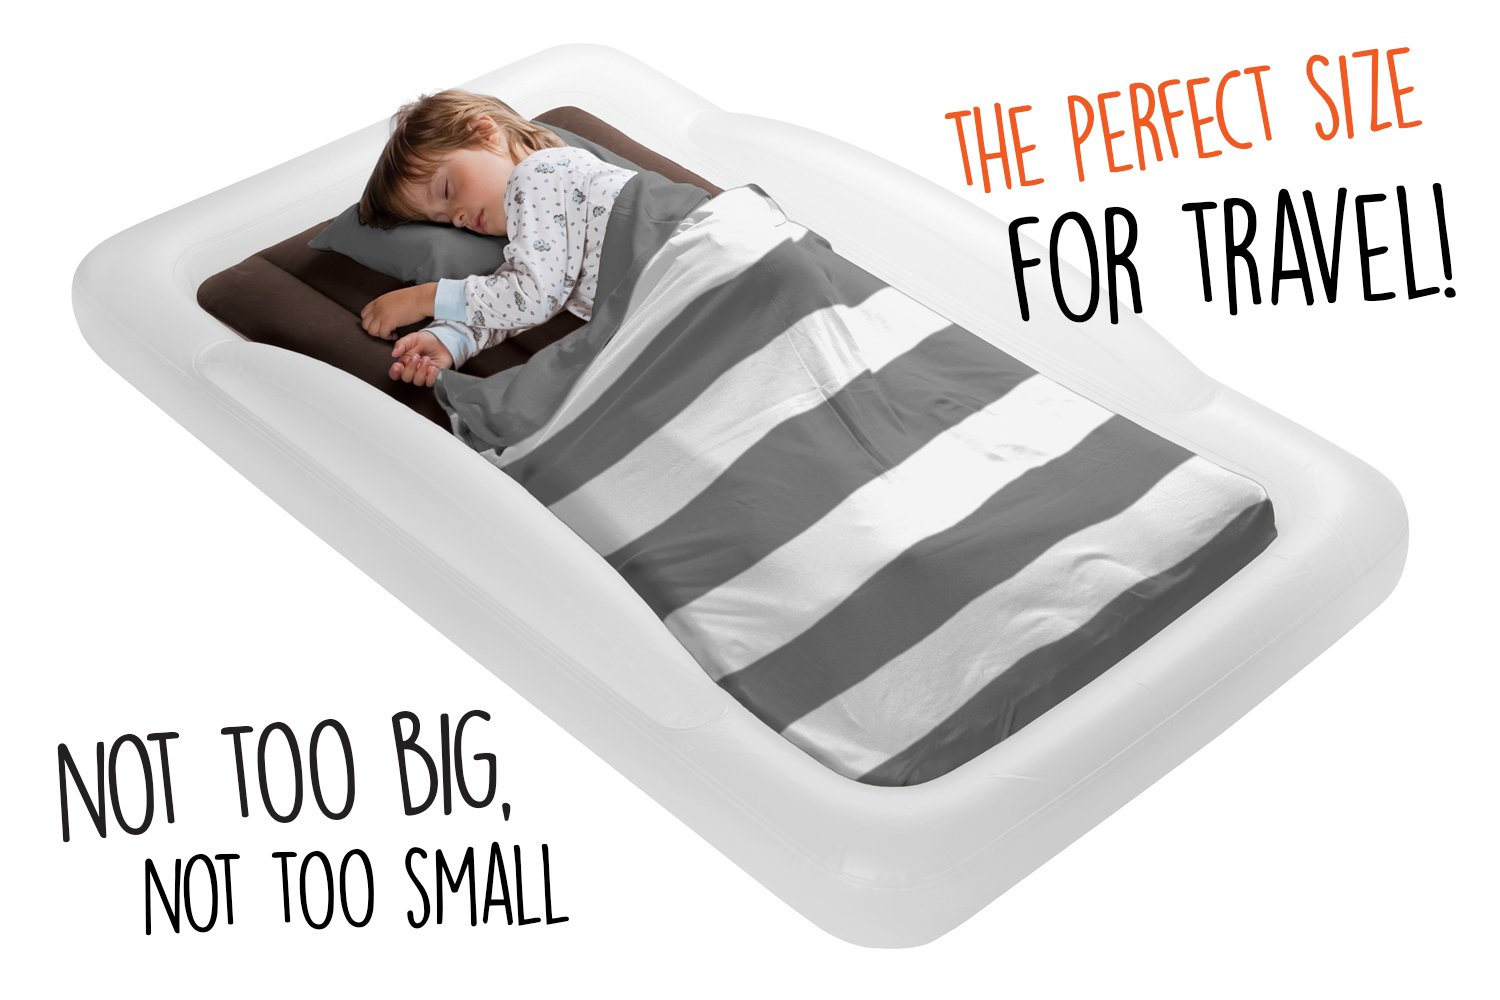 Amazon The Shrunks Toddler Travel Bed Portable Inflatable Air Mattress For Or Home Use White Size With Security Rails 60 X 37 9